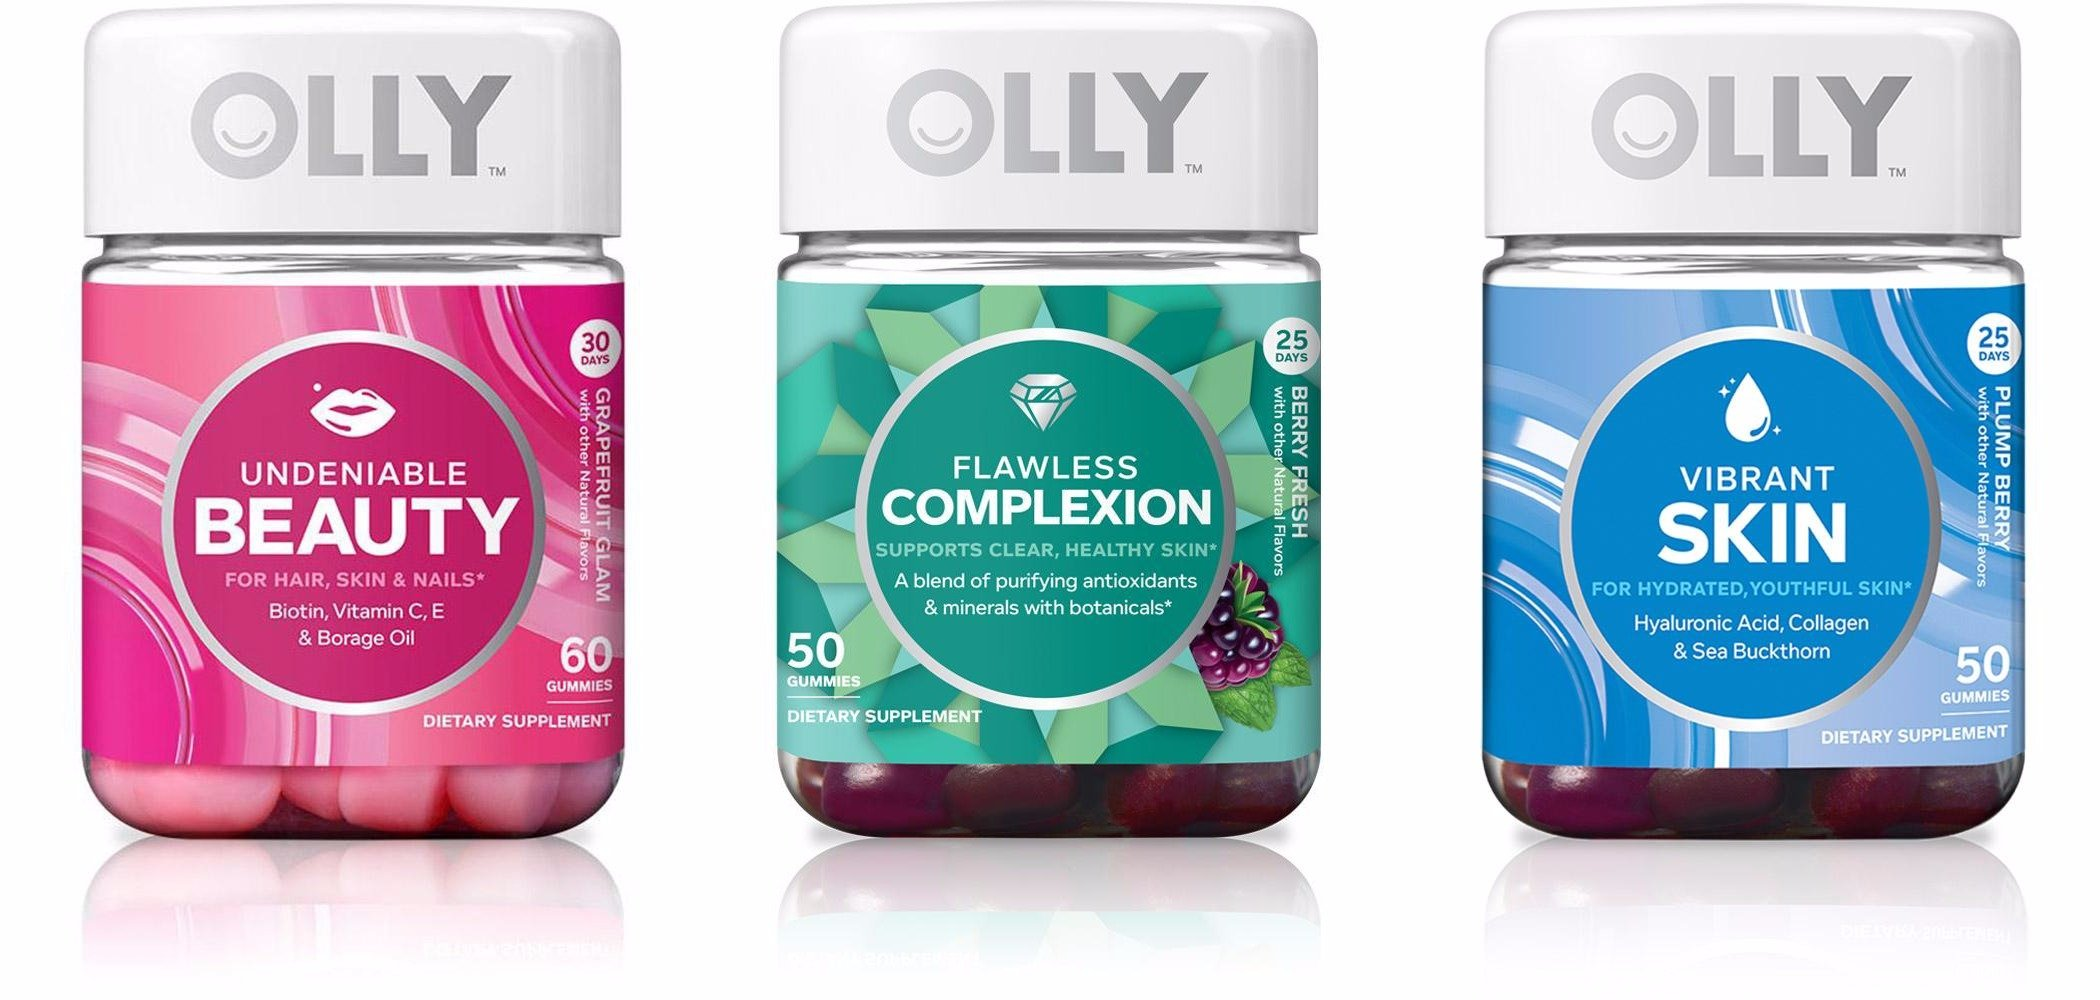 Olly Undeniable Beauty,Flawless Complexion,And Vibrant Skin Trio! A Jar Of 60 Undeniable Beauty! A Jar Of 50 Flawless Complexion! A Jar Of 50 Vibrant Skin! Perfect Combo To Keep Yourself Looking Best!